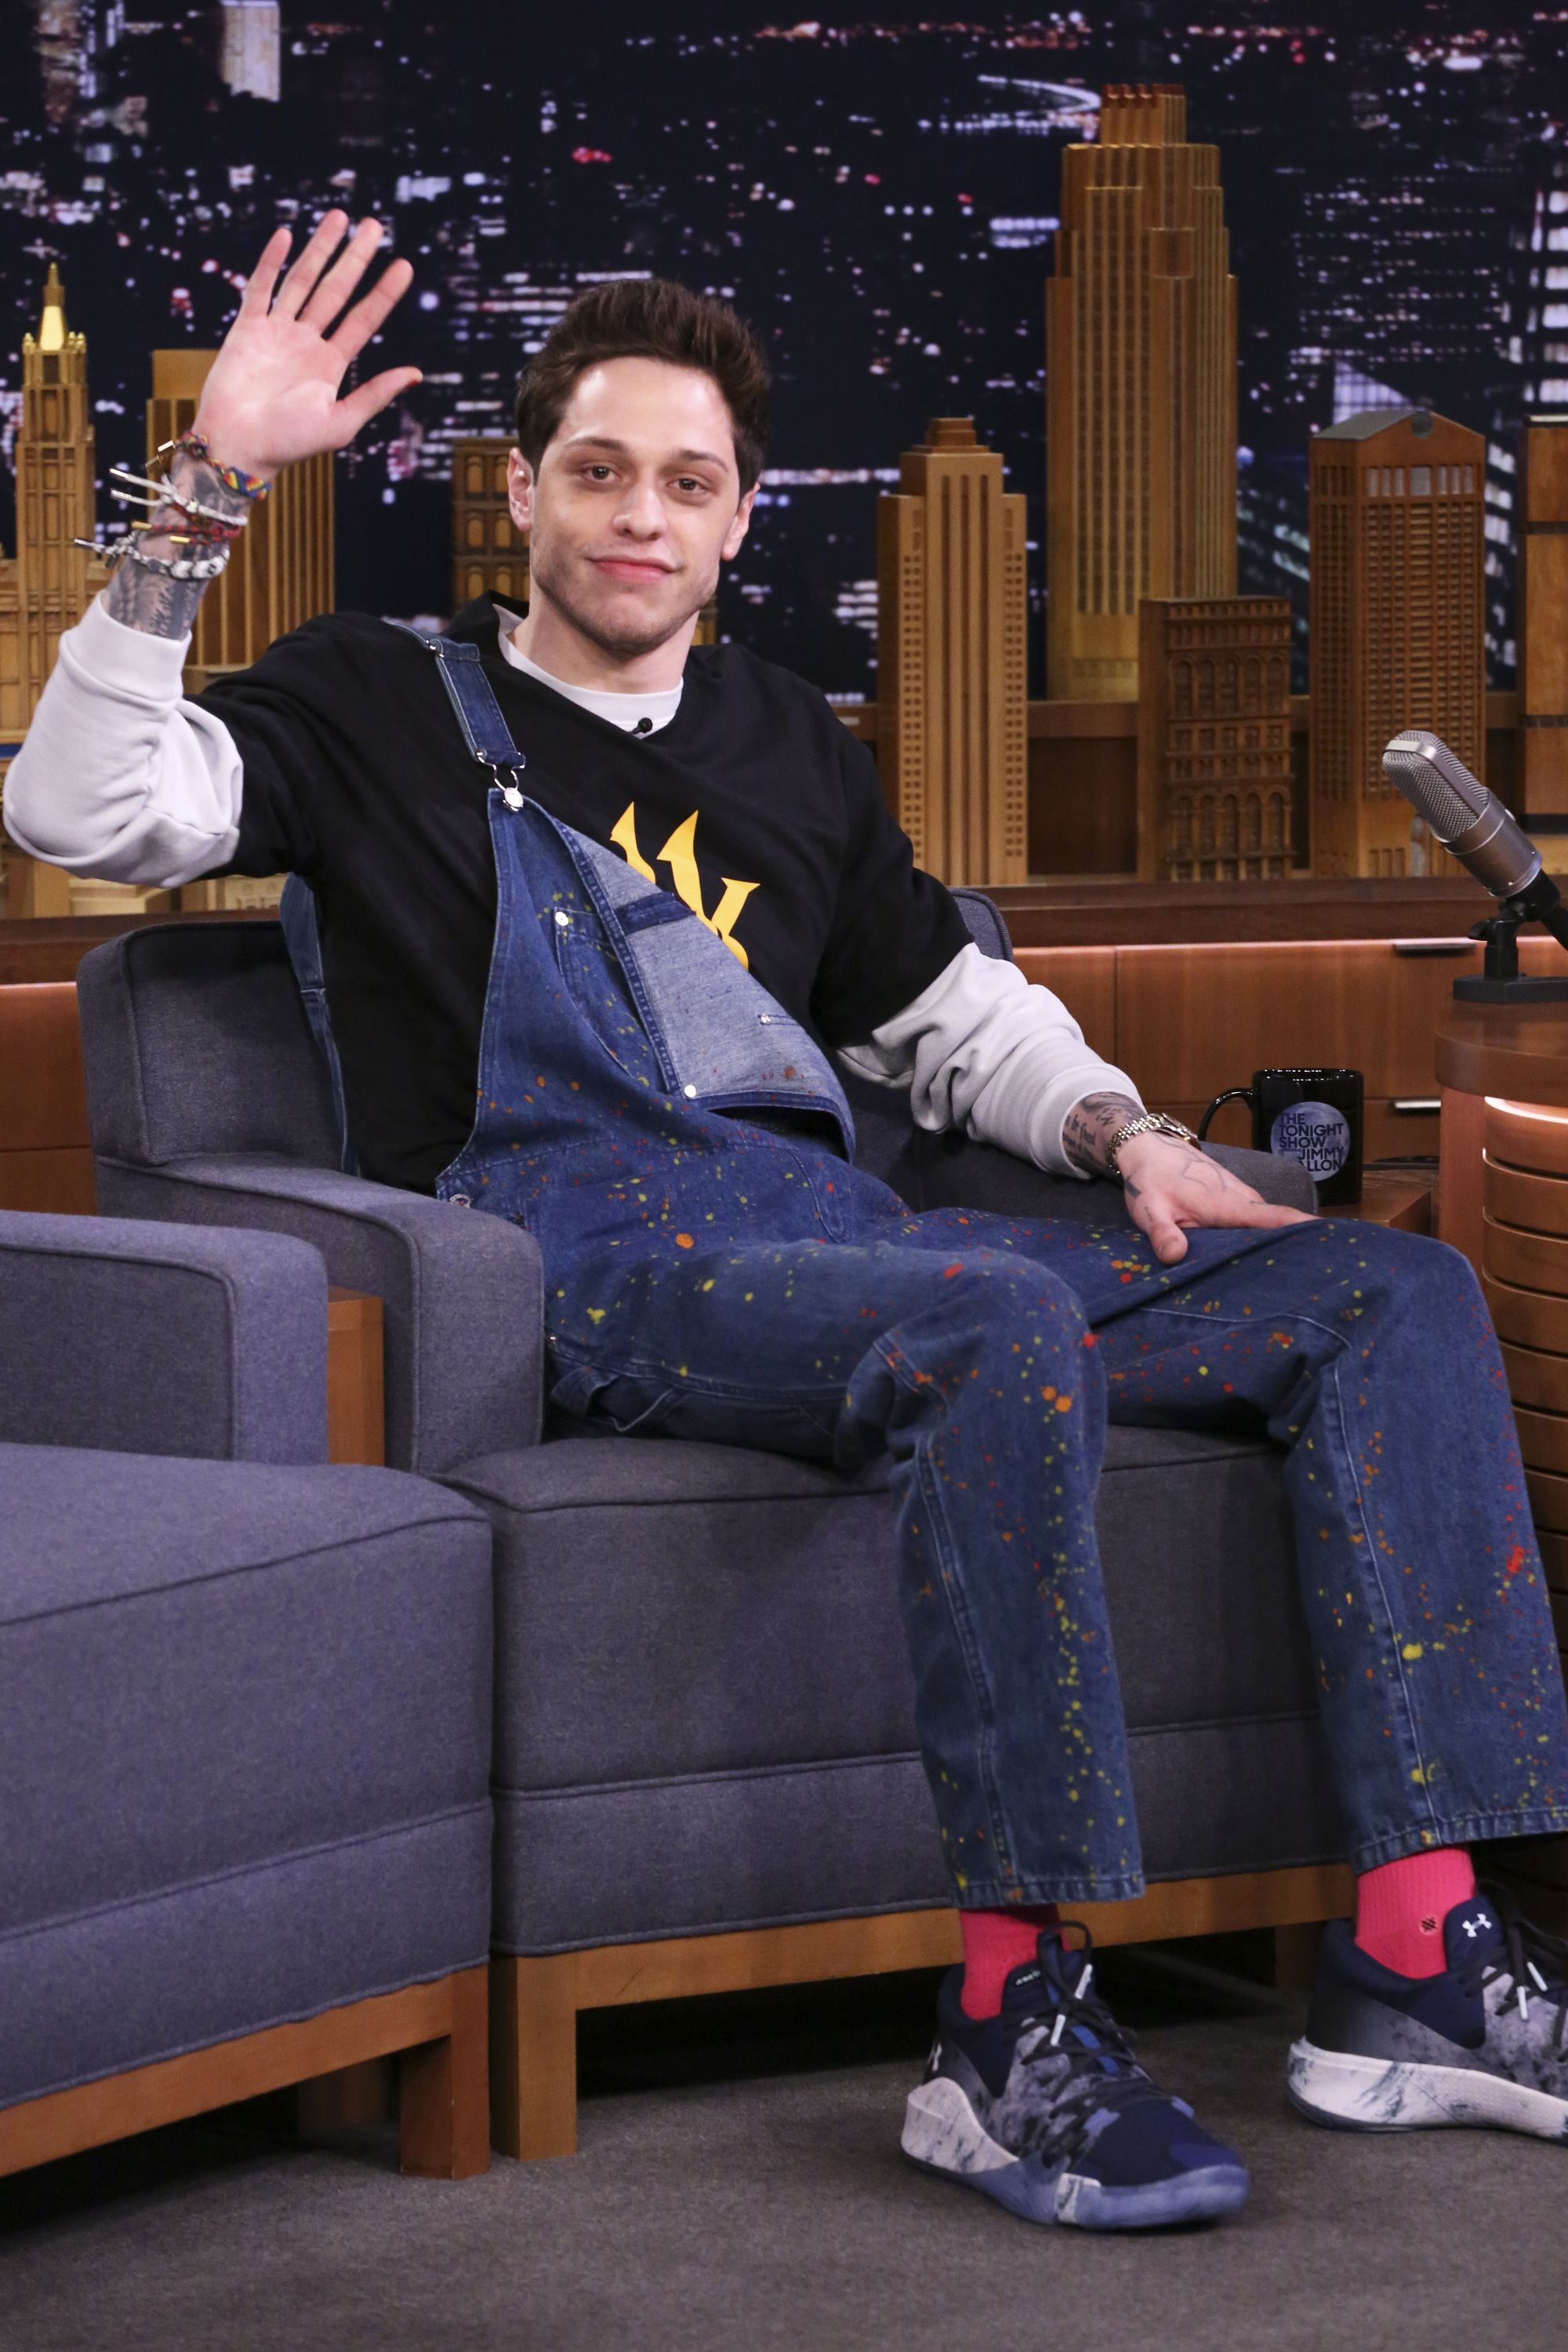 Pete Davidson Once Got Stuck Paying For Dinner With Kanye West And Kim Kardashian